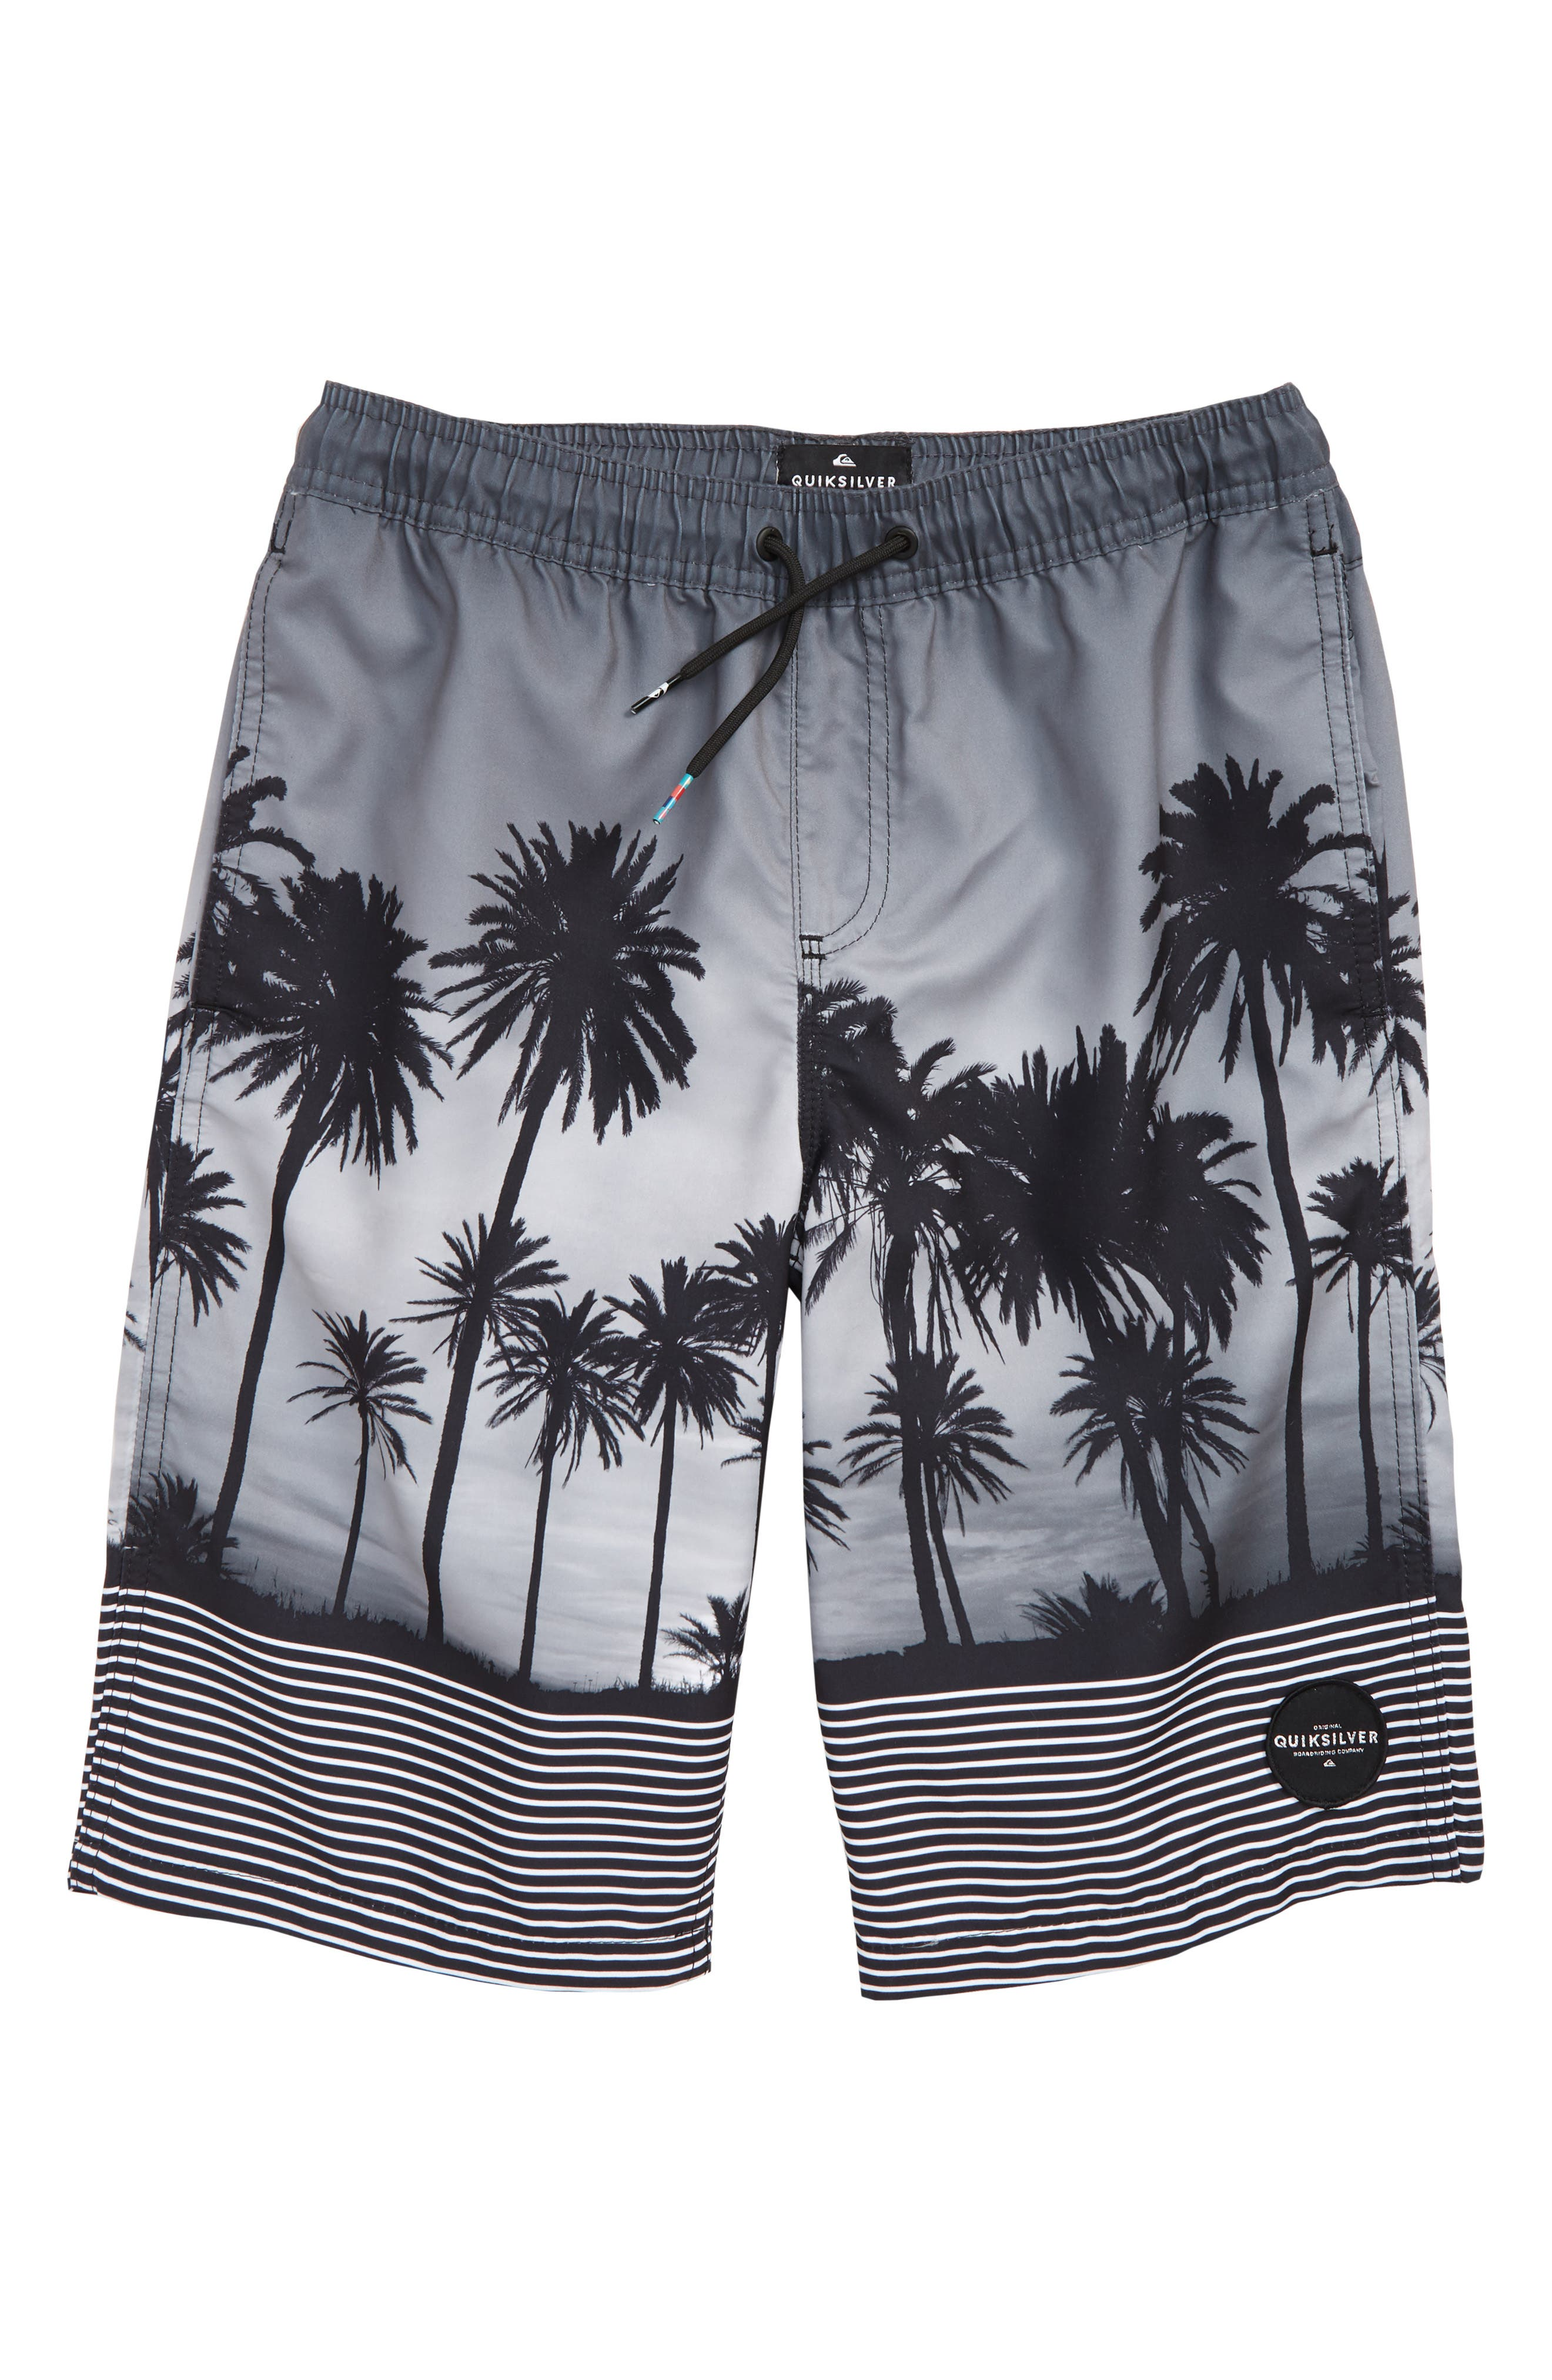 Sunset Vibes Volley Shorts,                         Main,                         color, 002